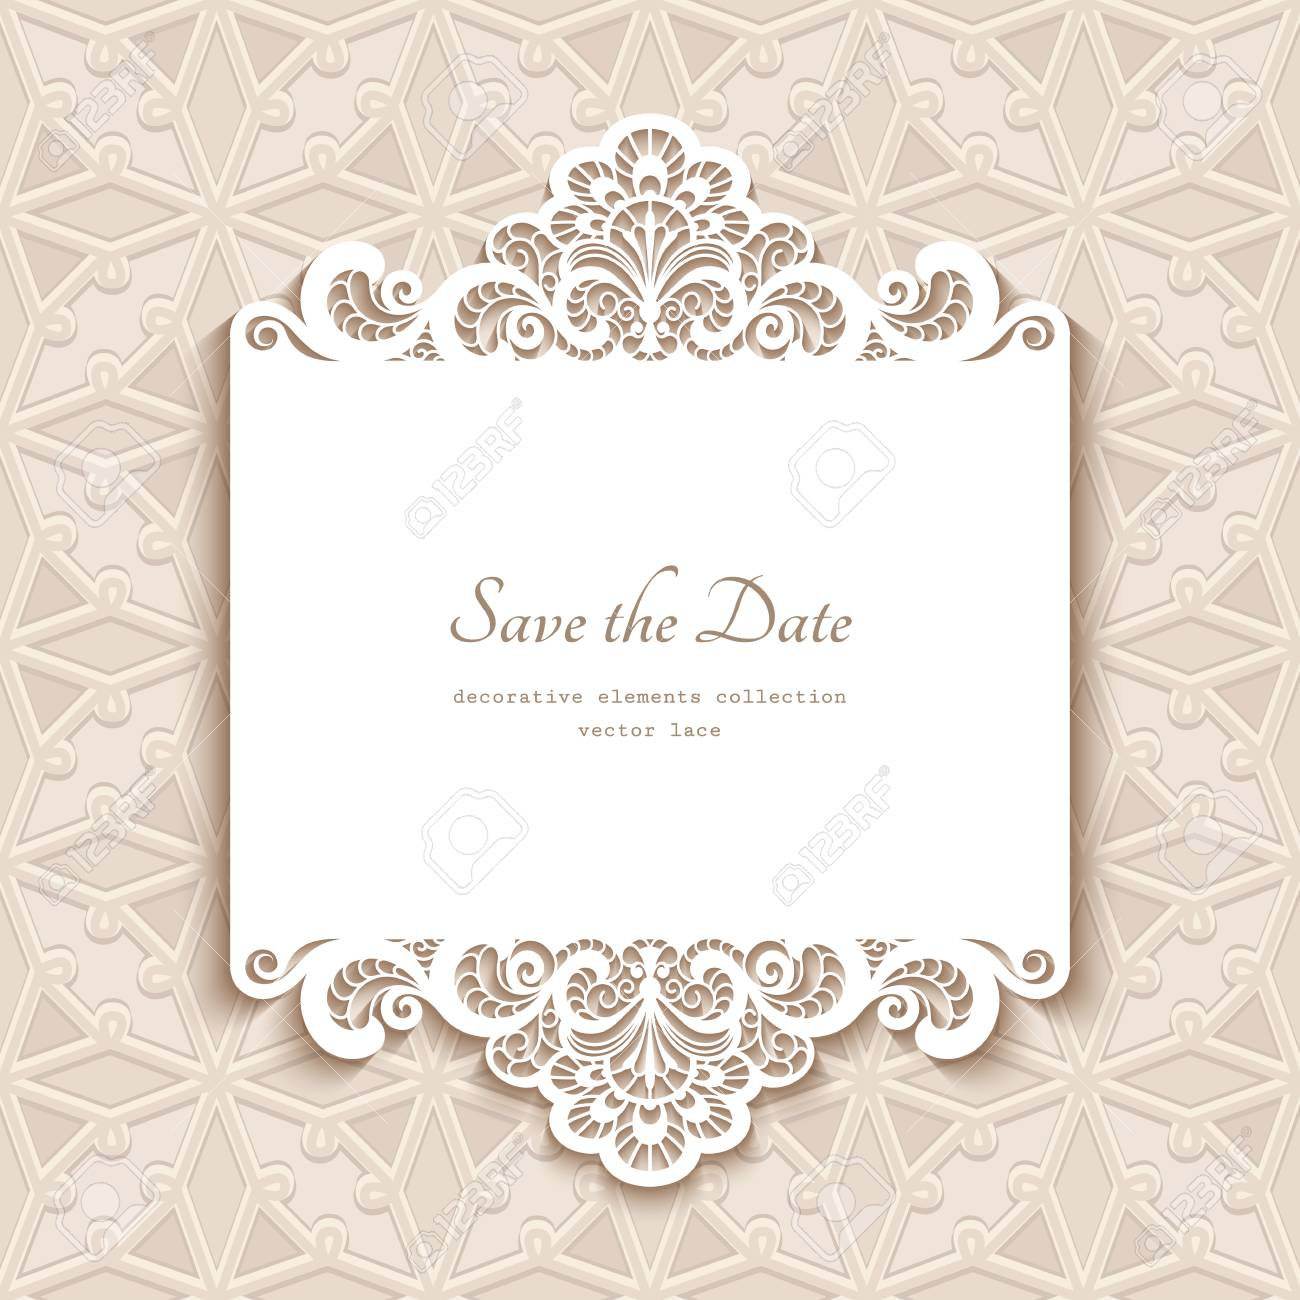 Cutout Paper Lace Frame Greeting Card Save The Date Or Wedding Invitation Template Stock: Cut Out Wedding Invitation Card Templates At Websimilar.org